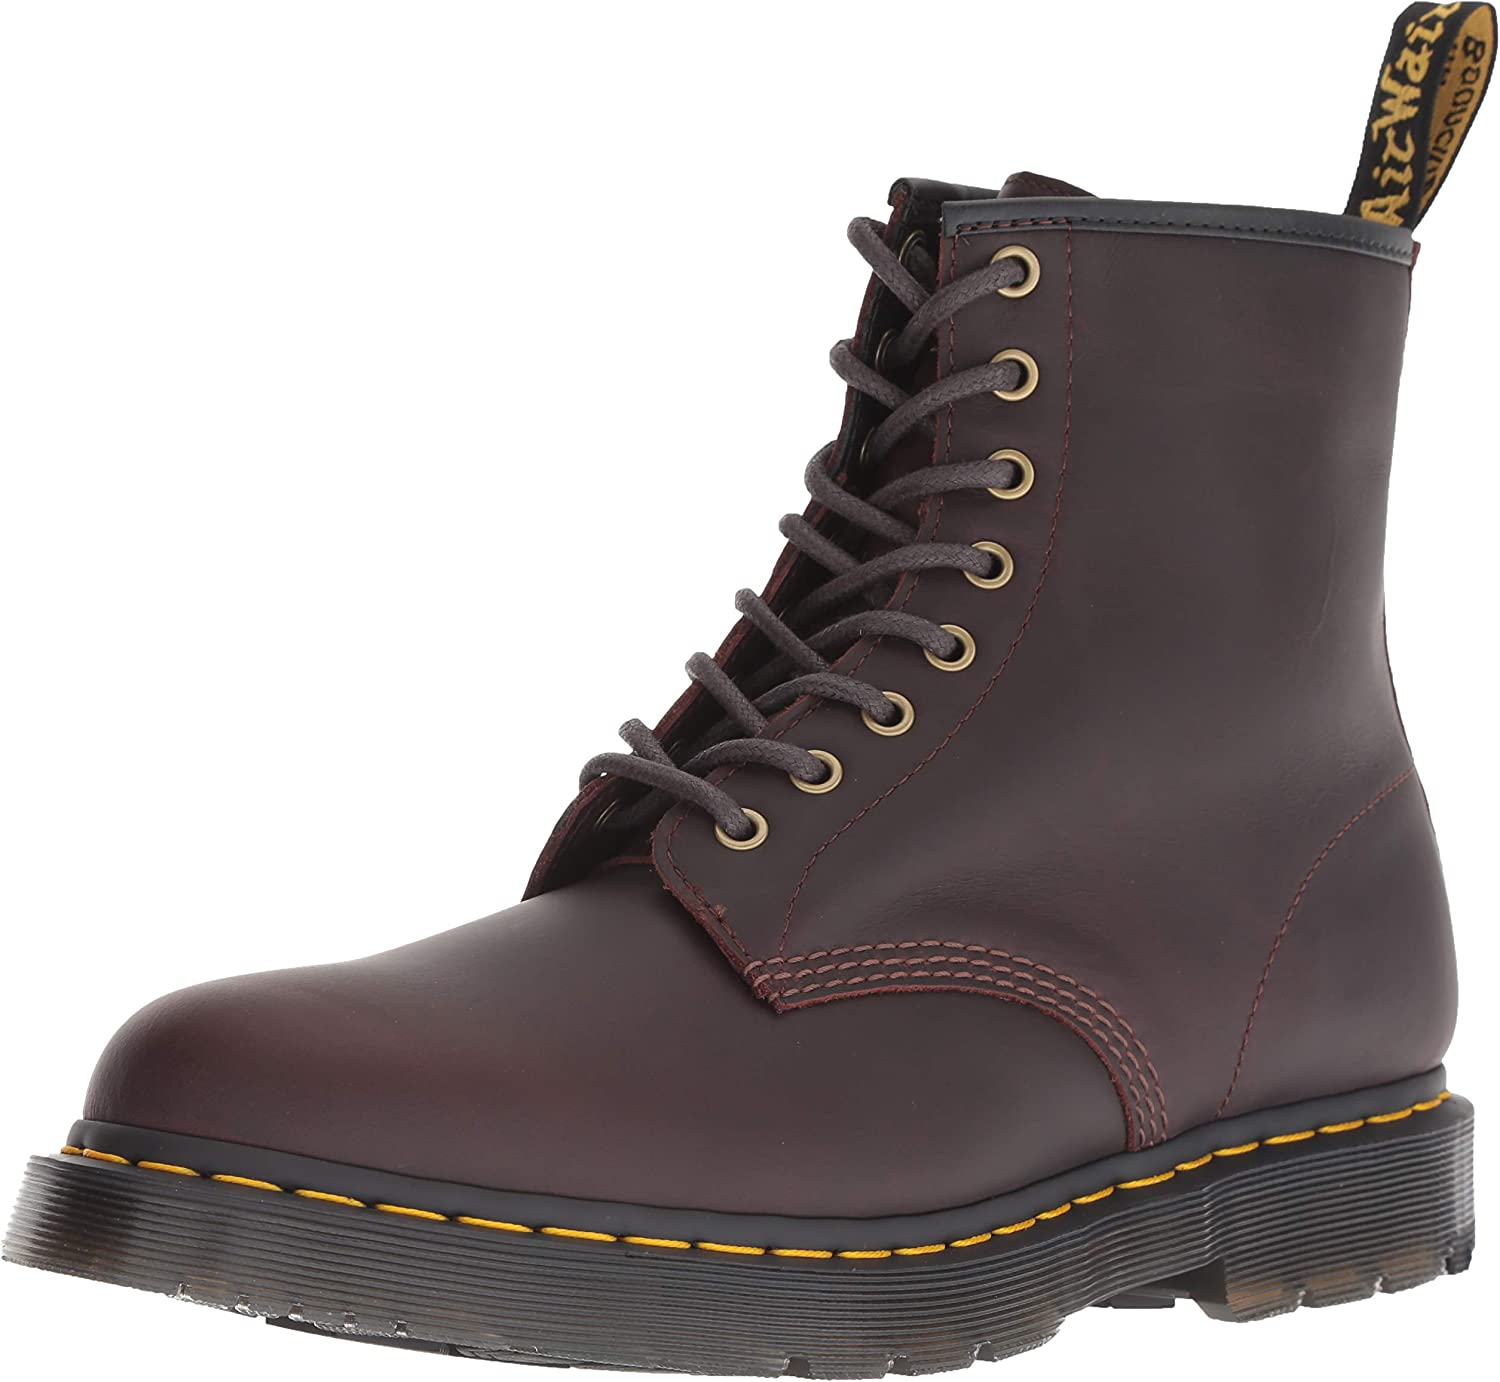 Dr. Martens Sale Special Price National products Men's 1460 Wp Fashion Boot Snowplow